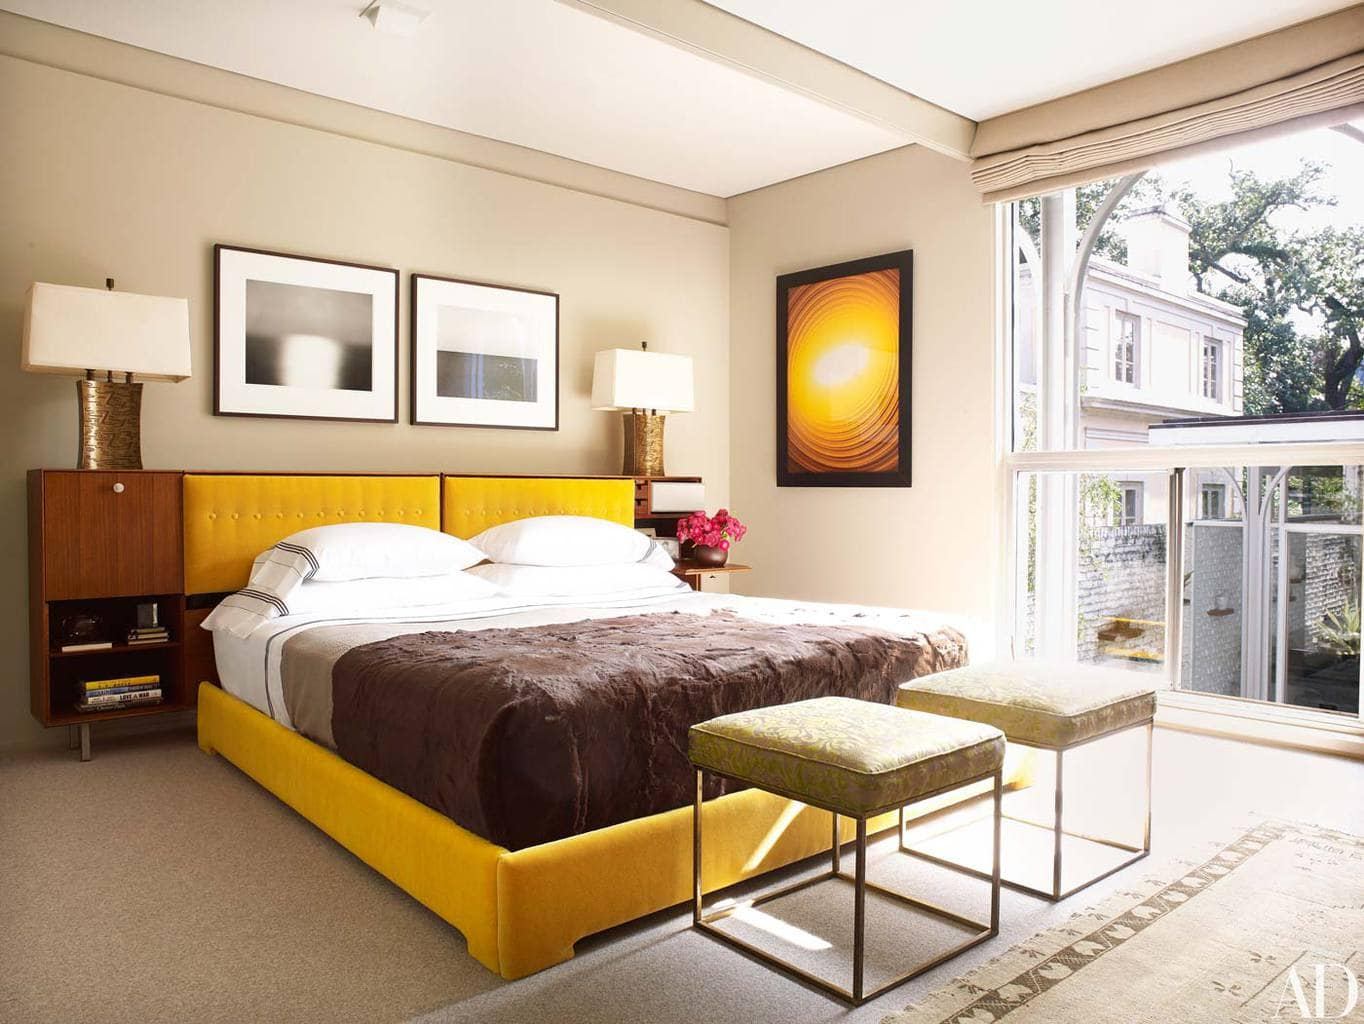 Bedroom Furniture New Orleans Free New Orleans Hotels Governorus Suite Bedroom With Bedroom